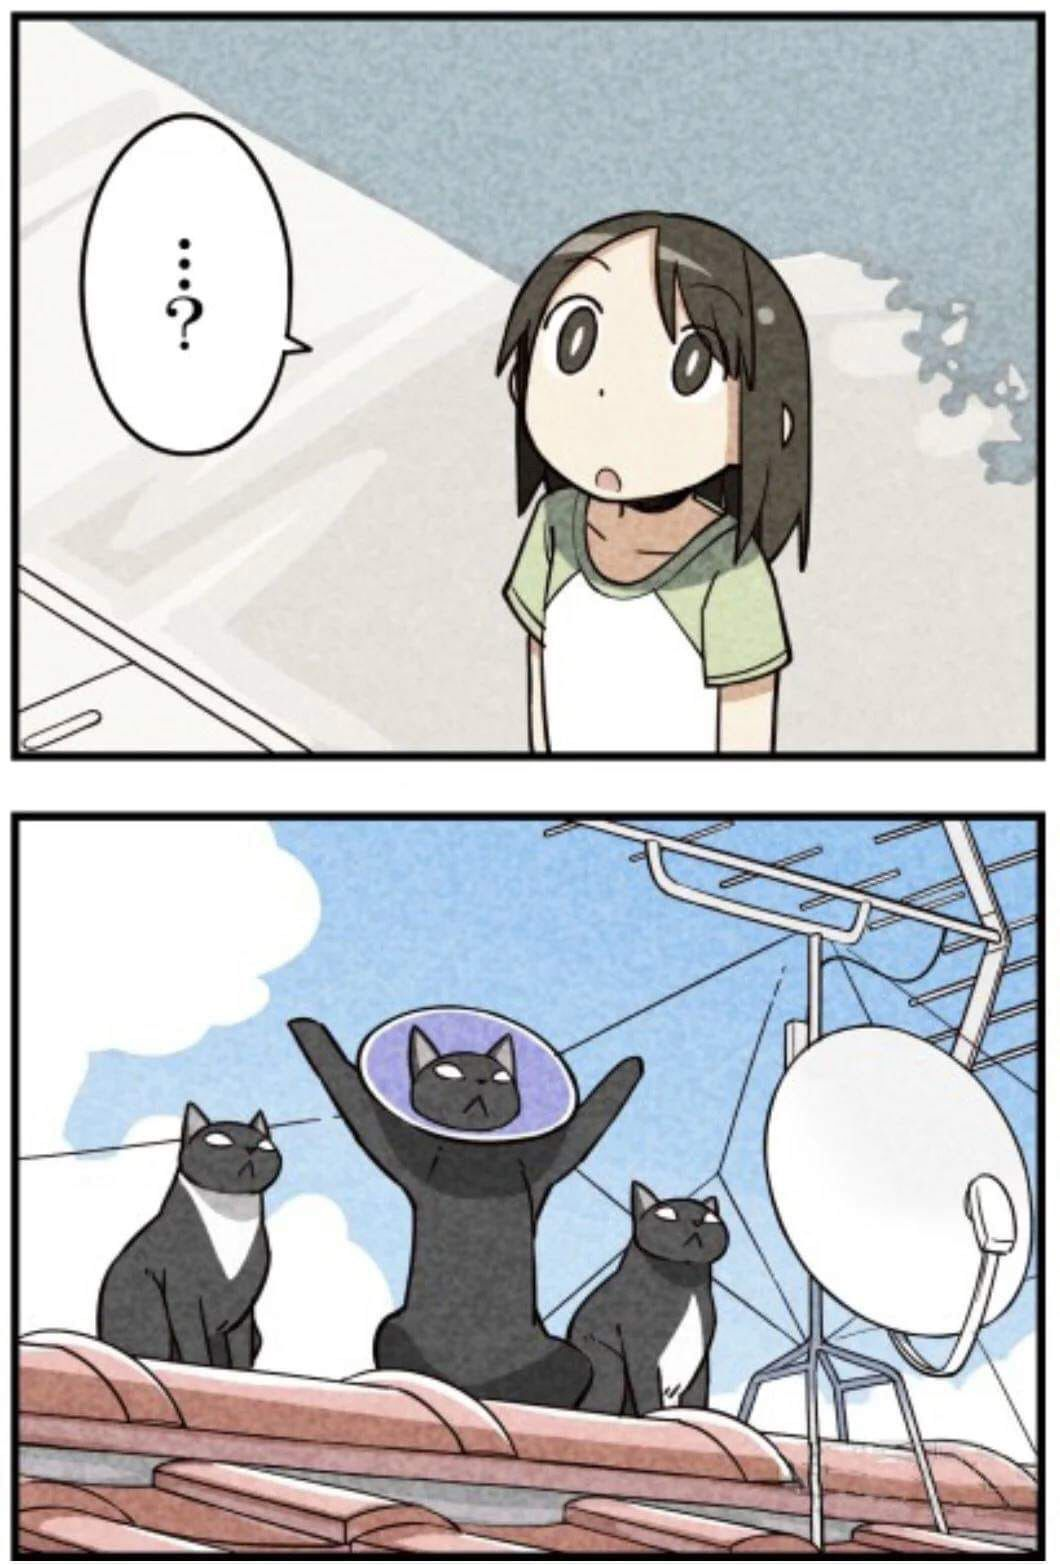 Pin by えリか on Animu Funny baby images, Anime funny